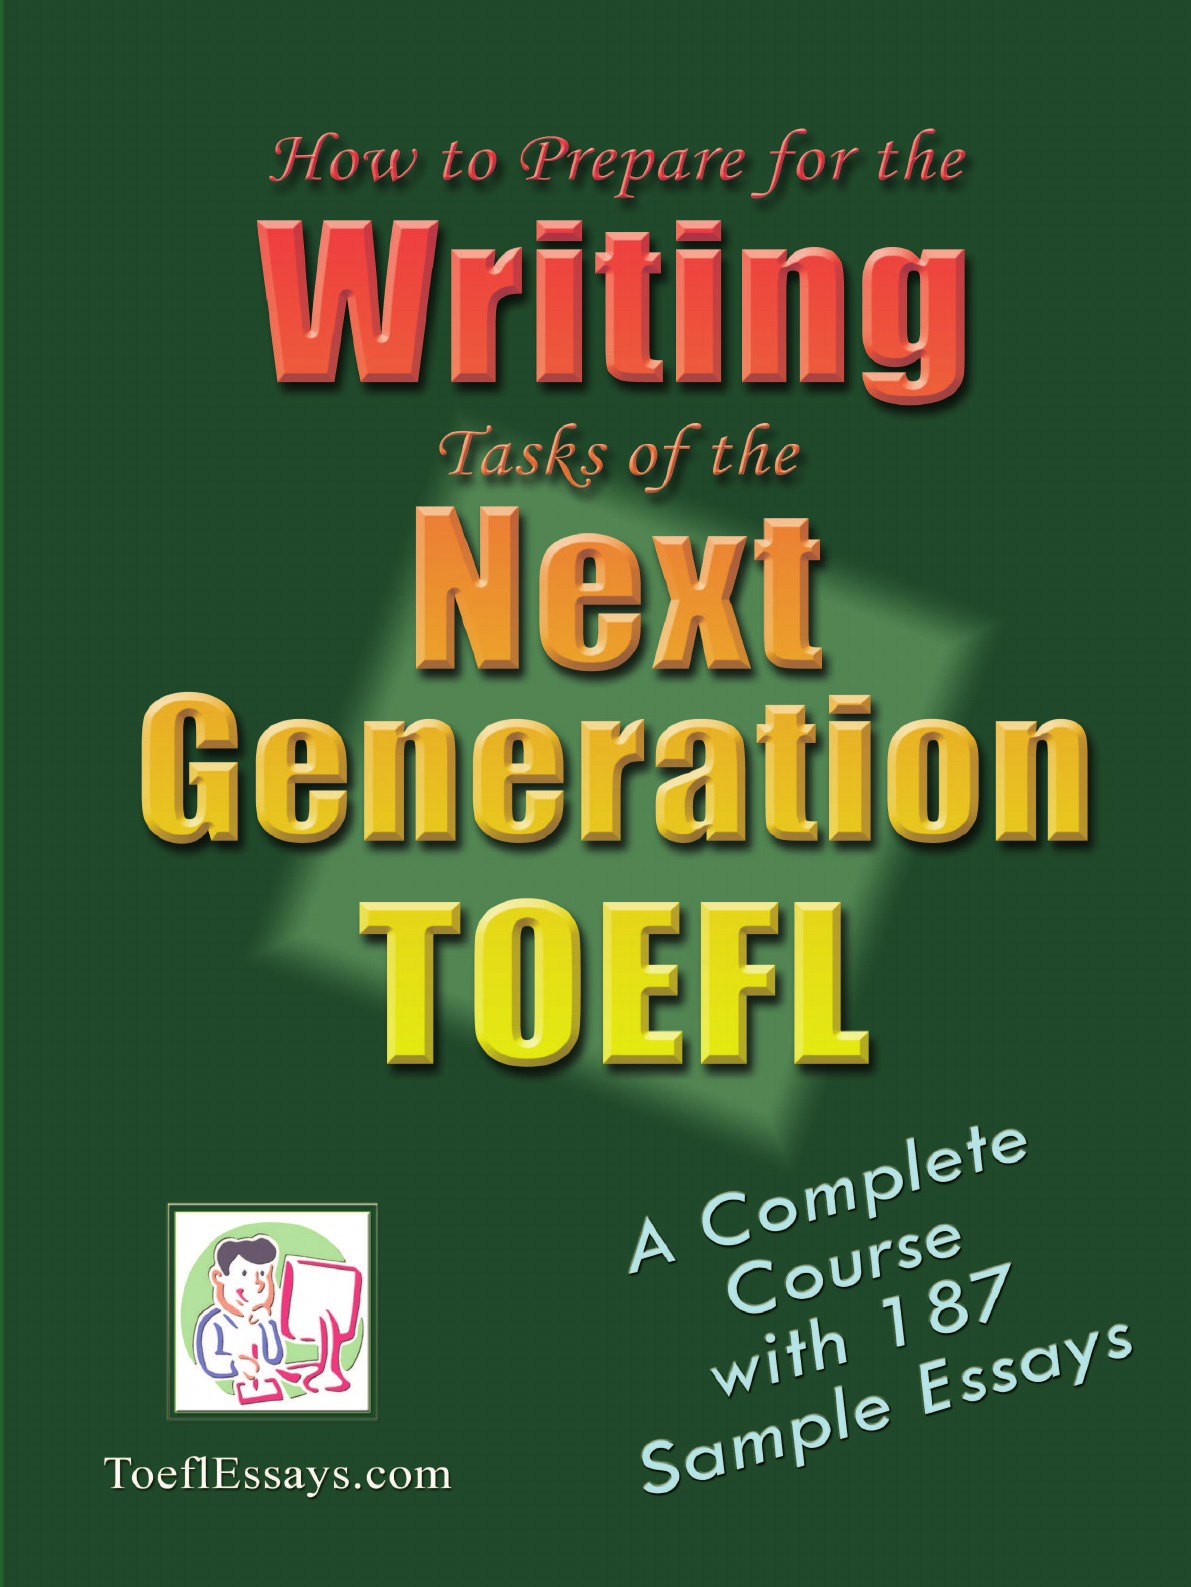 Toeflessays Com How to Prepare for the Writing Tasks of the Next Generation TOEFL - A Complete Course with 187 Sample Essays writing on the wall